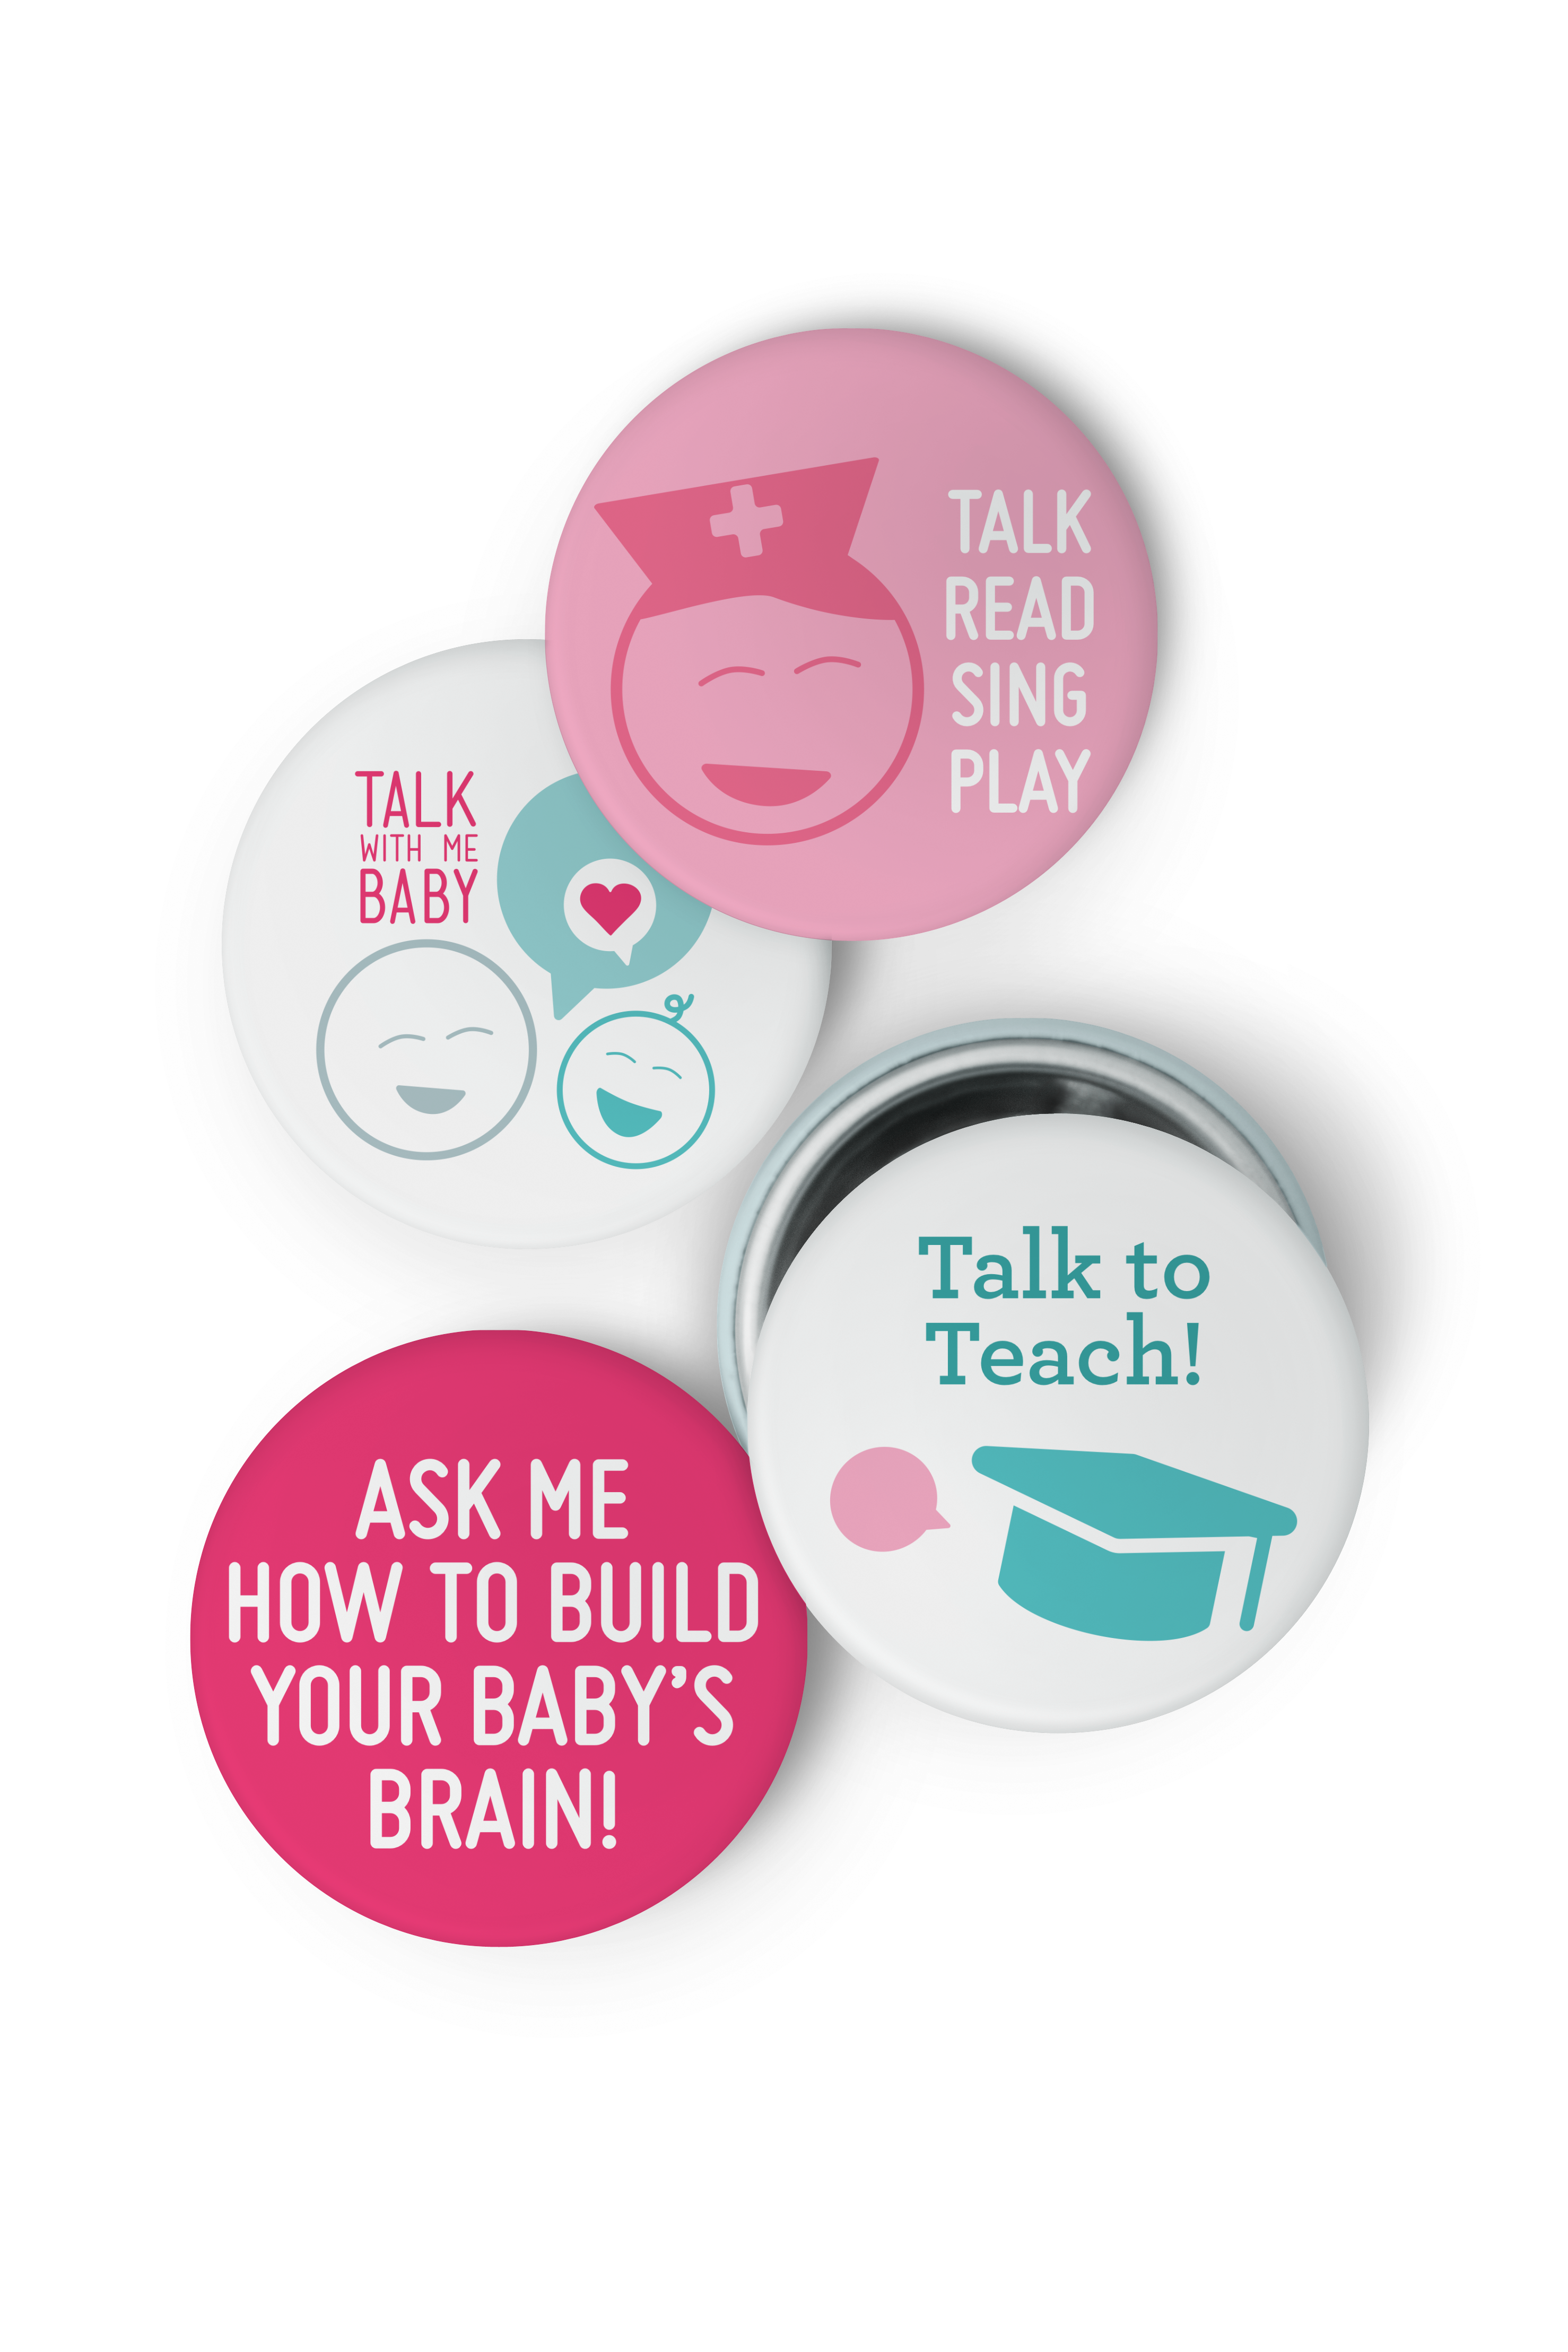 twmb2016-mockups-buttons.png